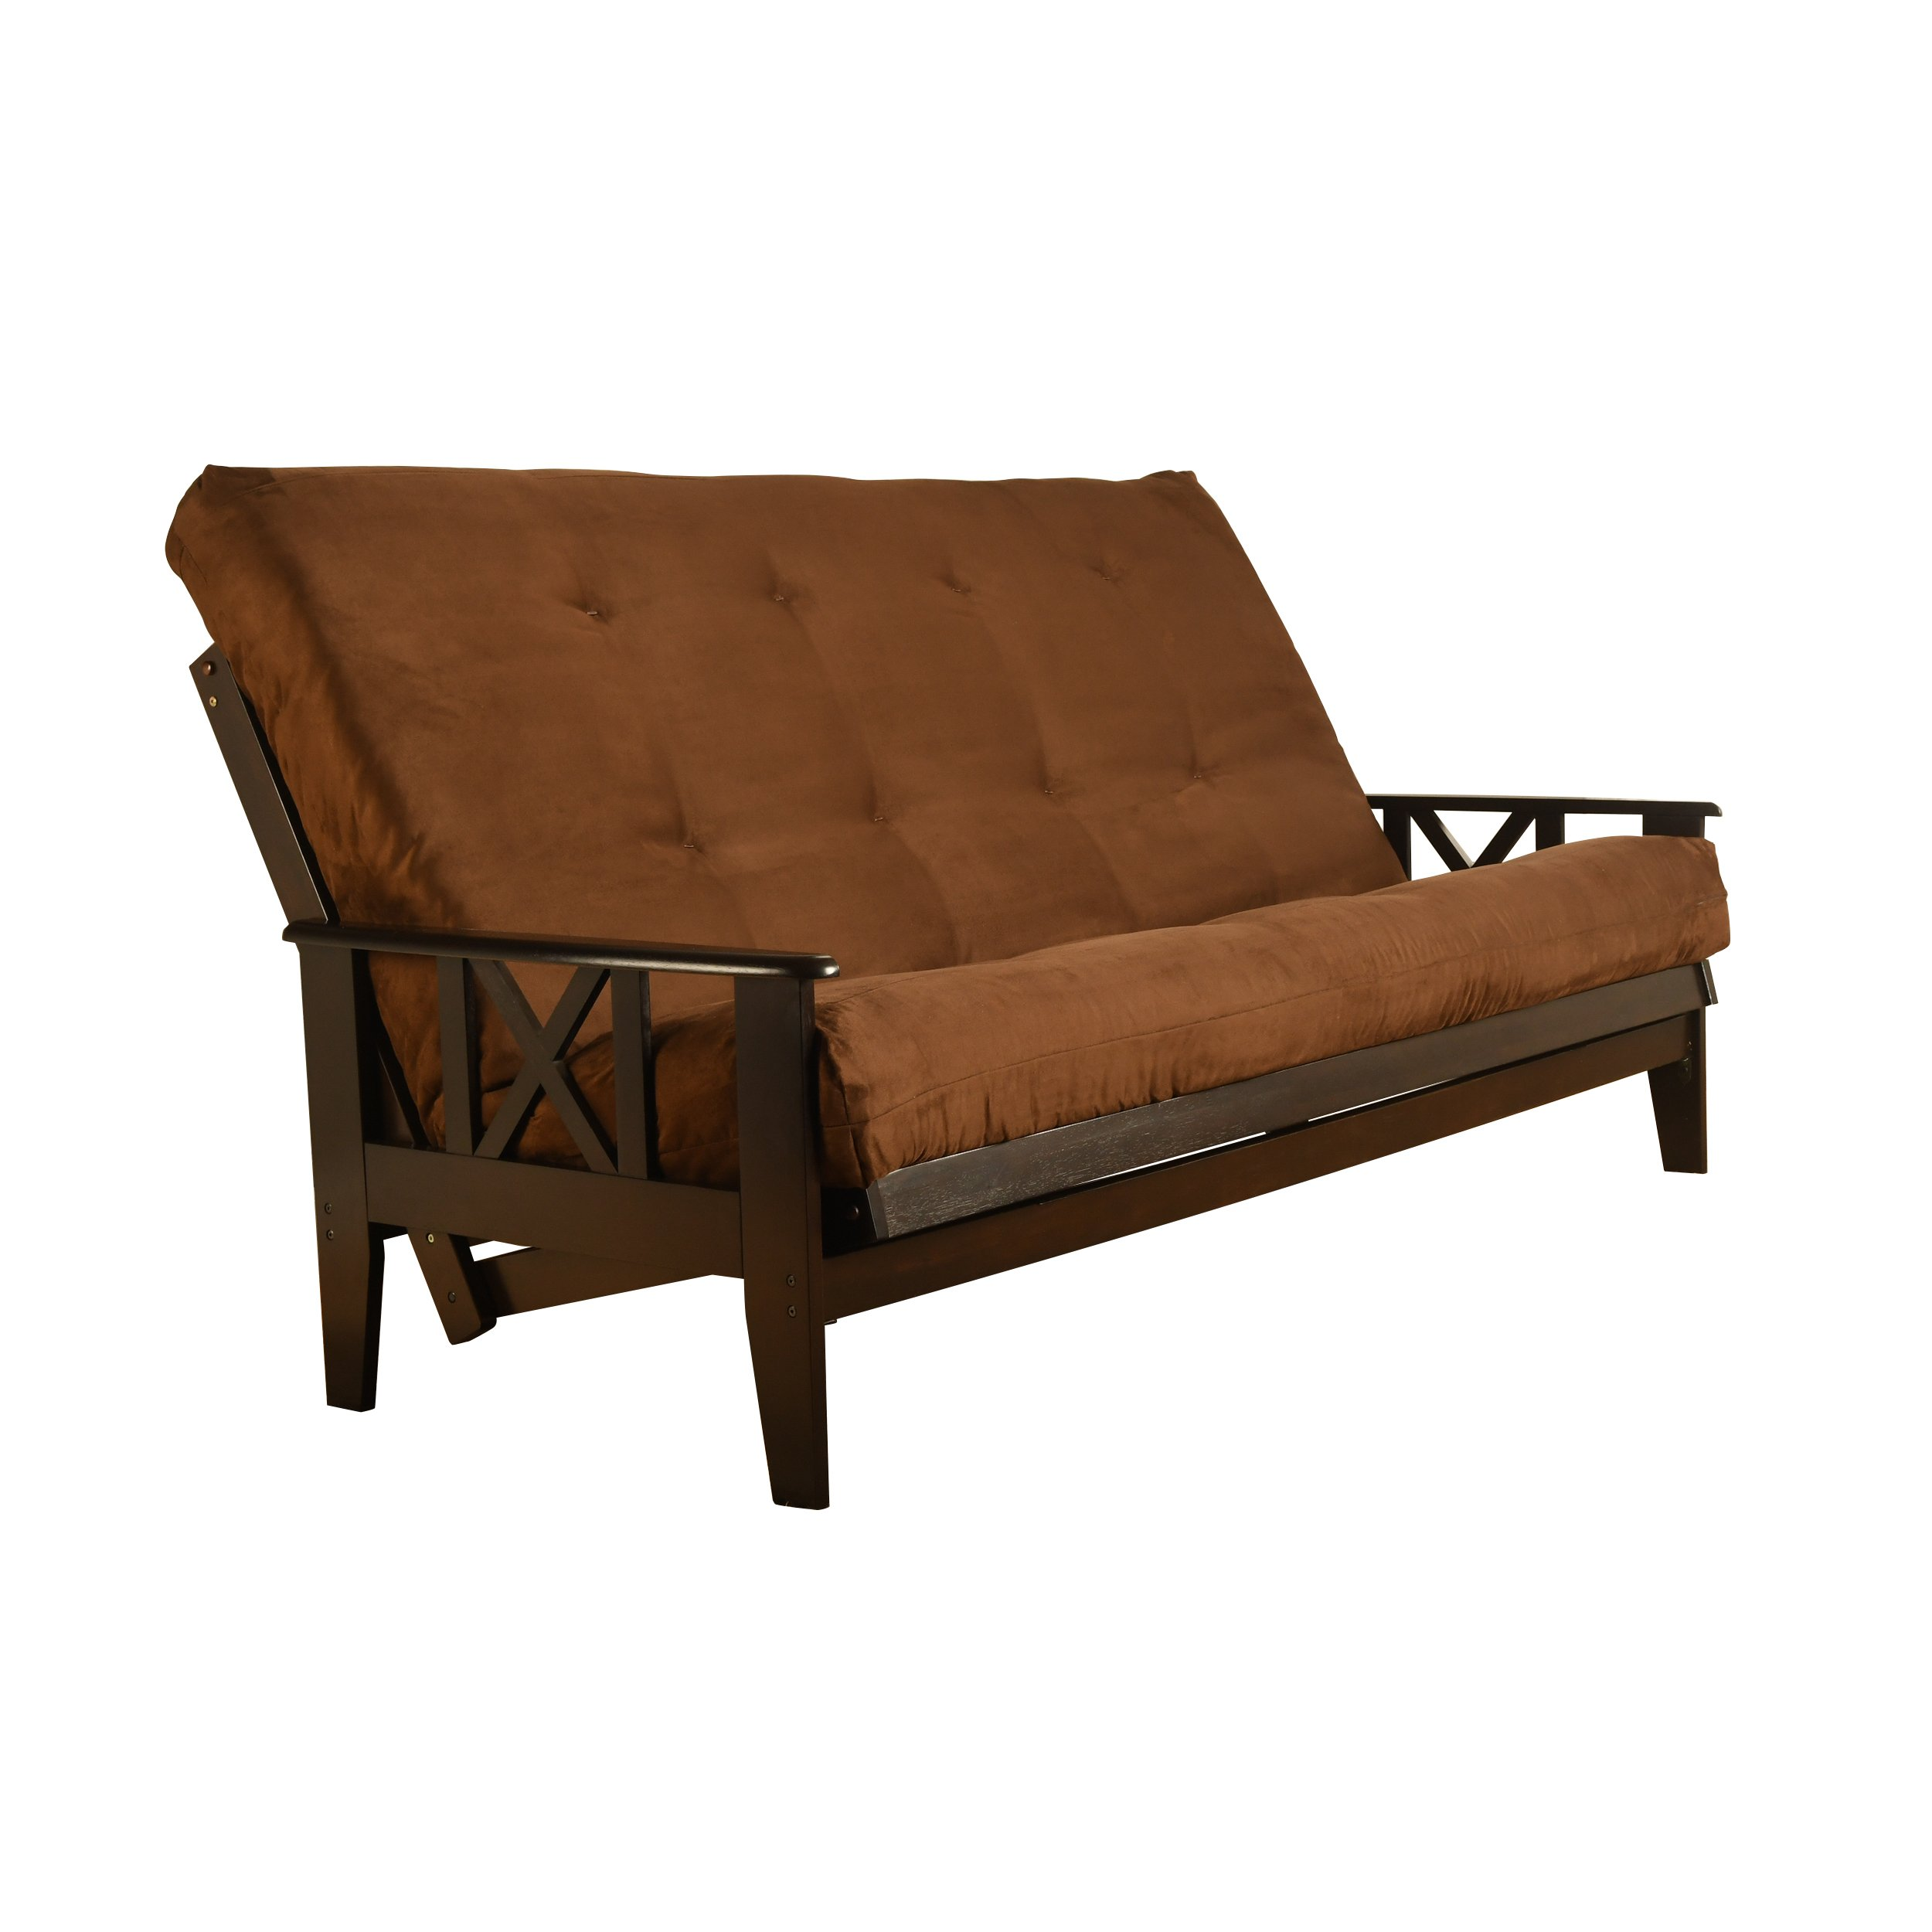 store me cheap price reviewing sofa bed buy futon fabulous near quality guide best futons online